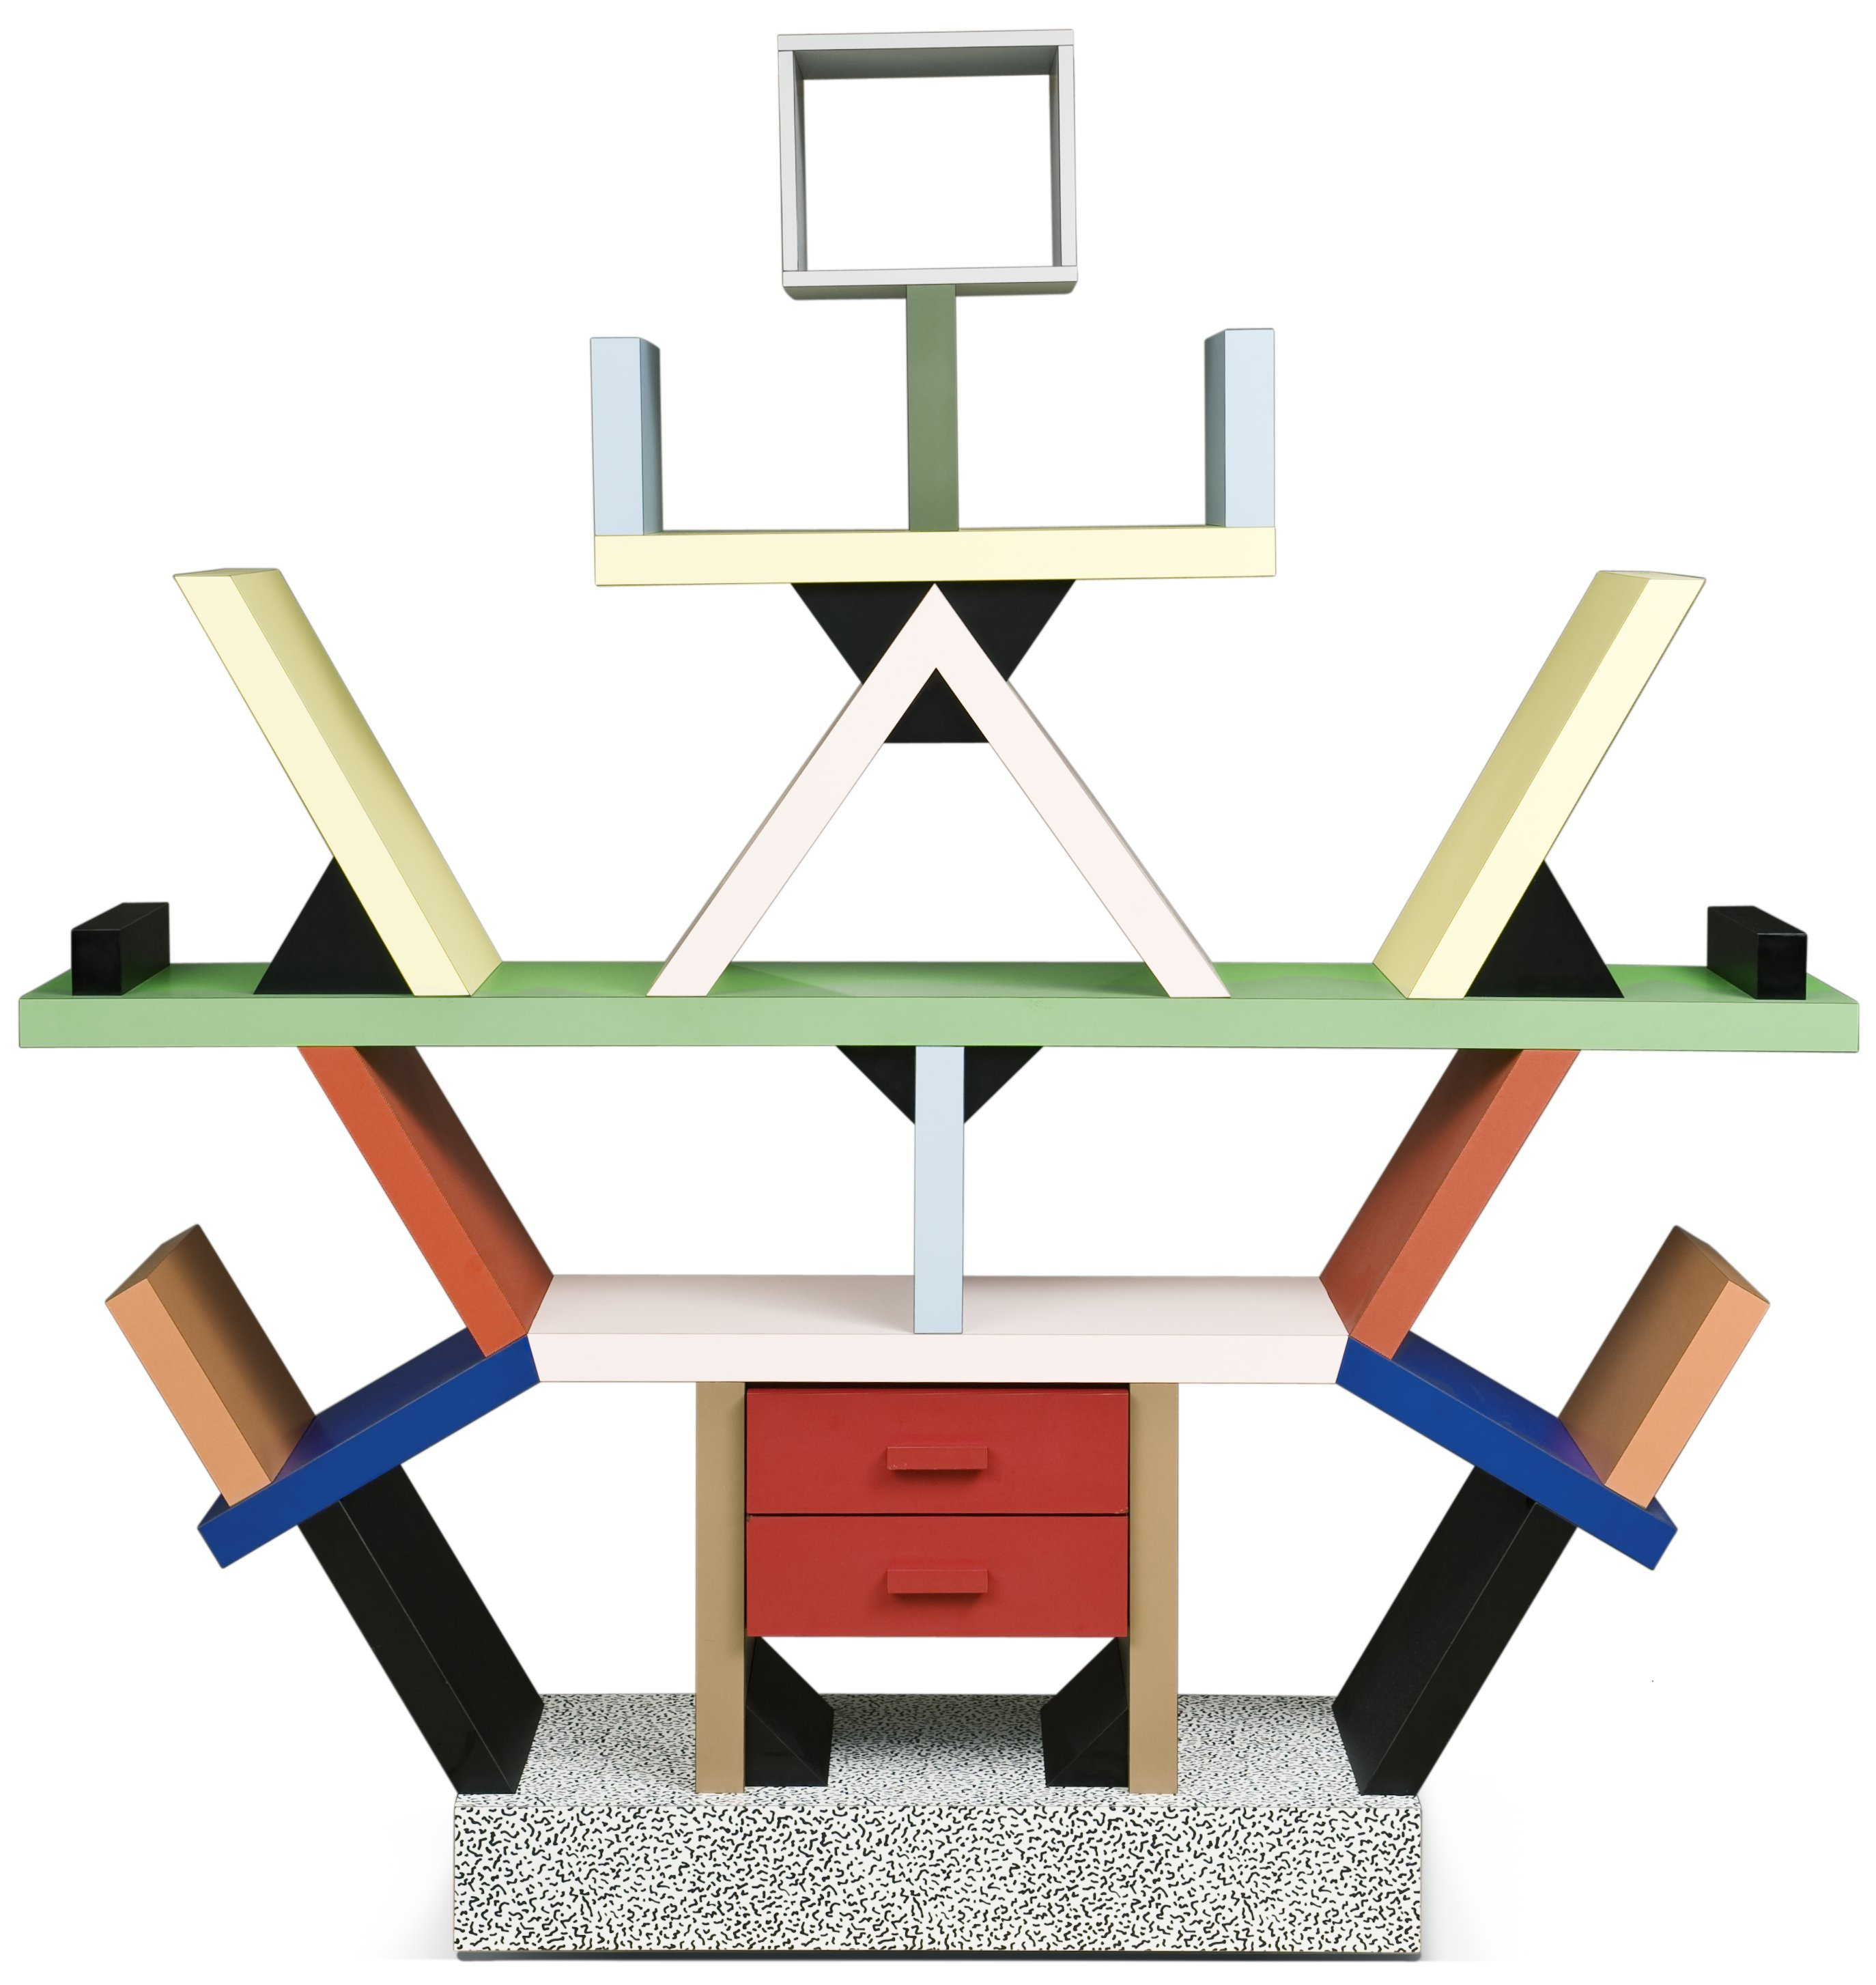 An ettore sottsass bookcase carlton by memphis italy for Memphis sottsass